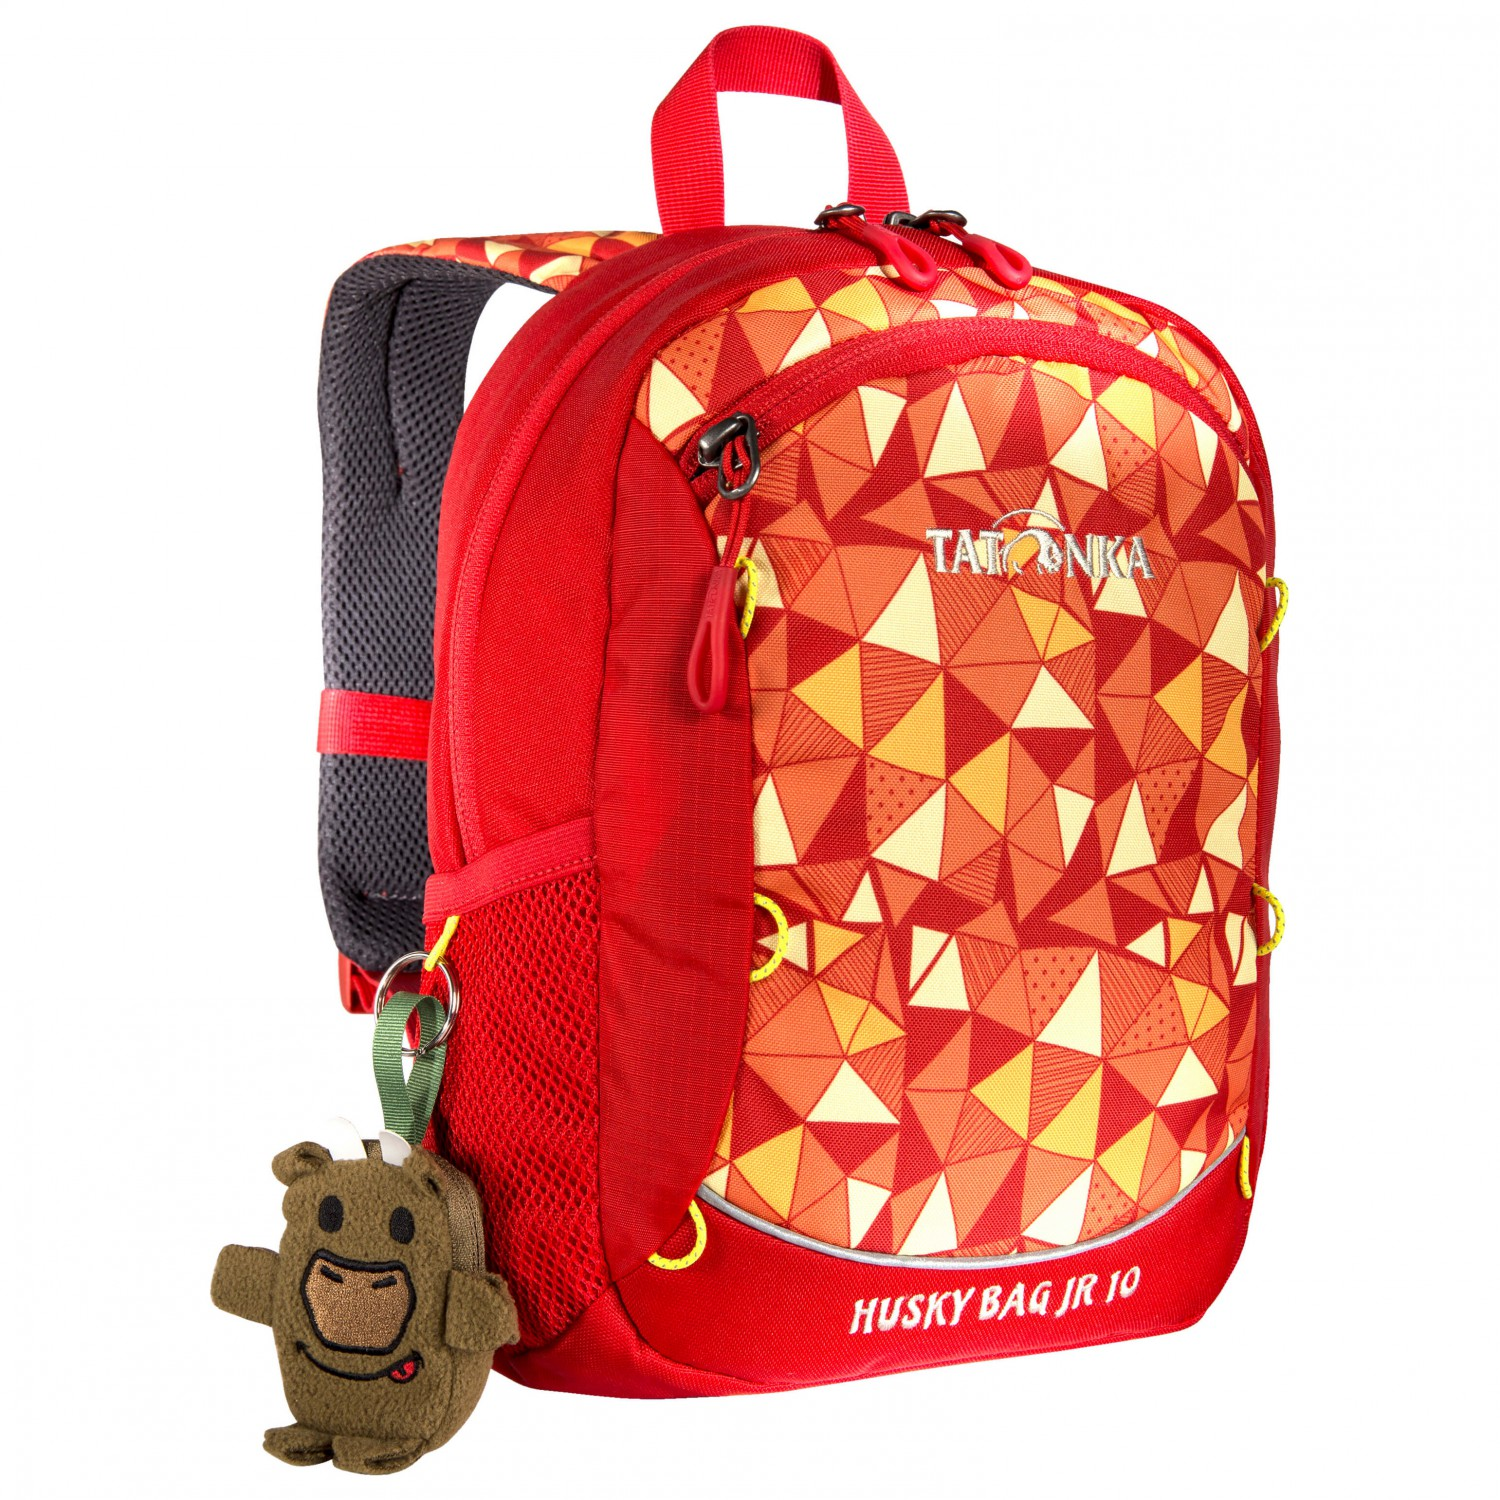 Tatonka - Kid s Husky Bag 10 - Kids  backpack ... 740682f25290f